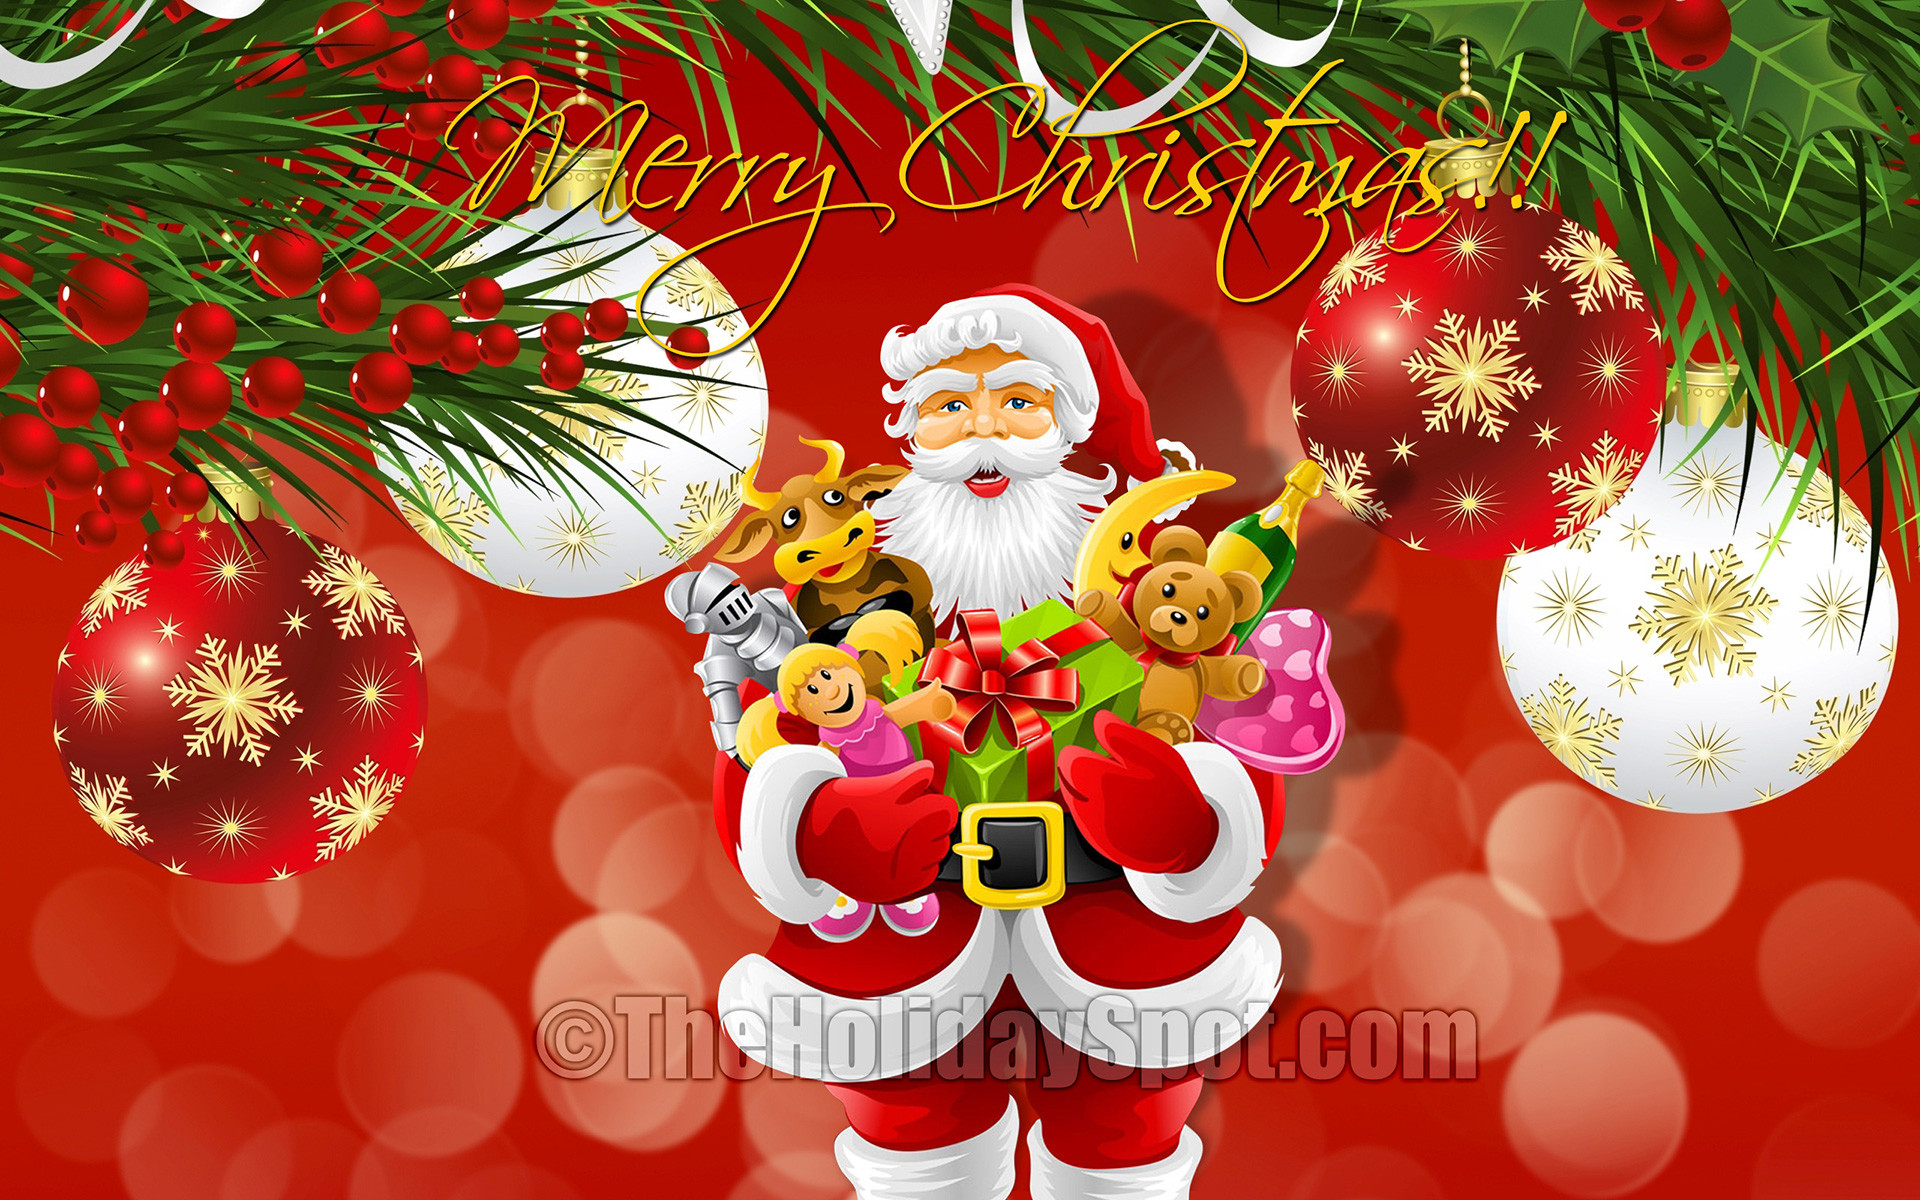 Santa with Toys in Christmas Wallpaper